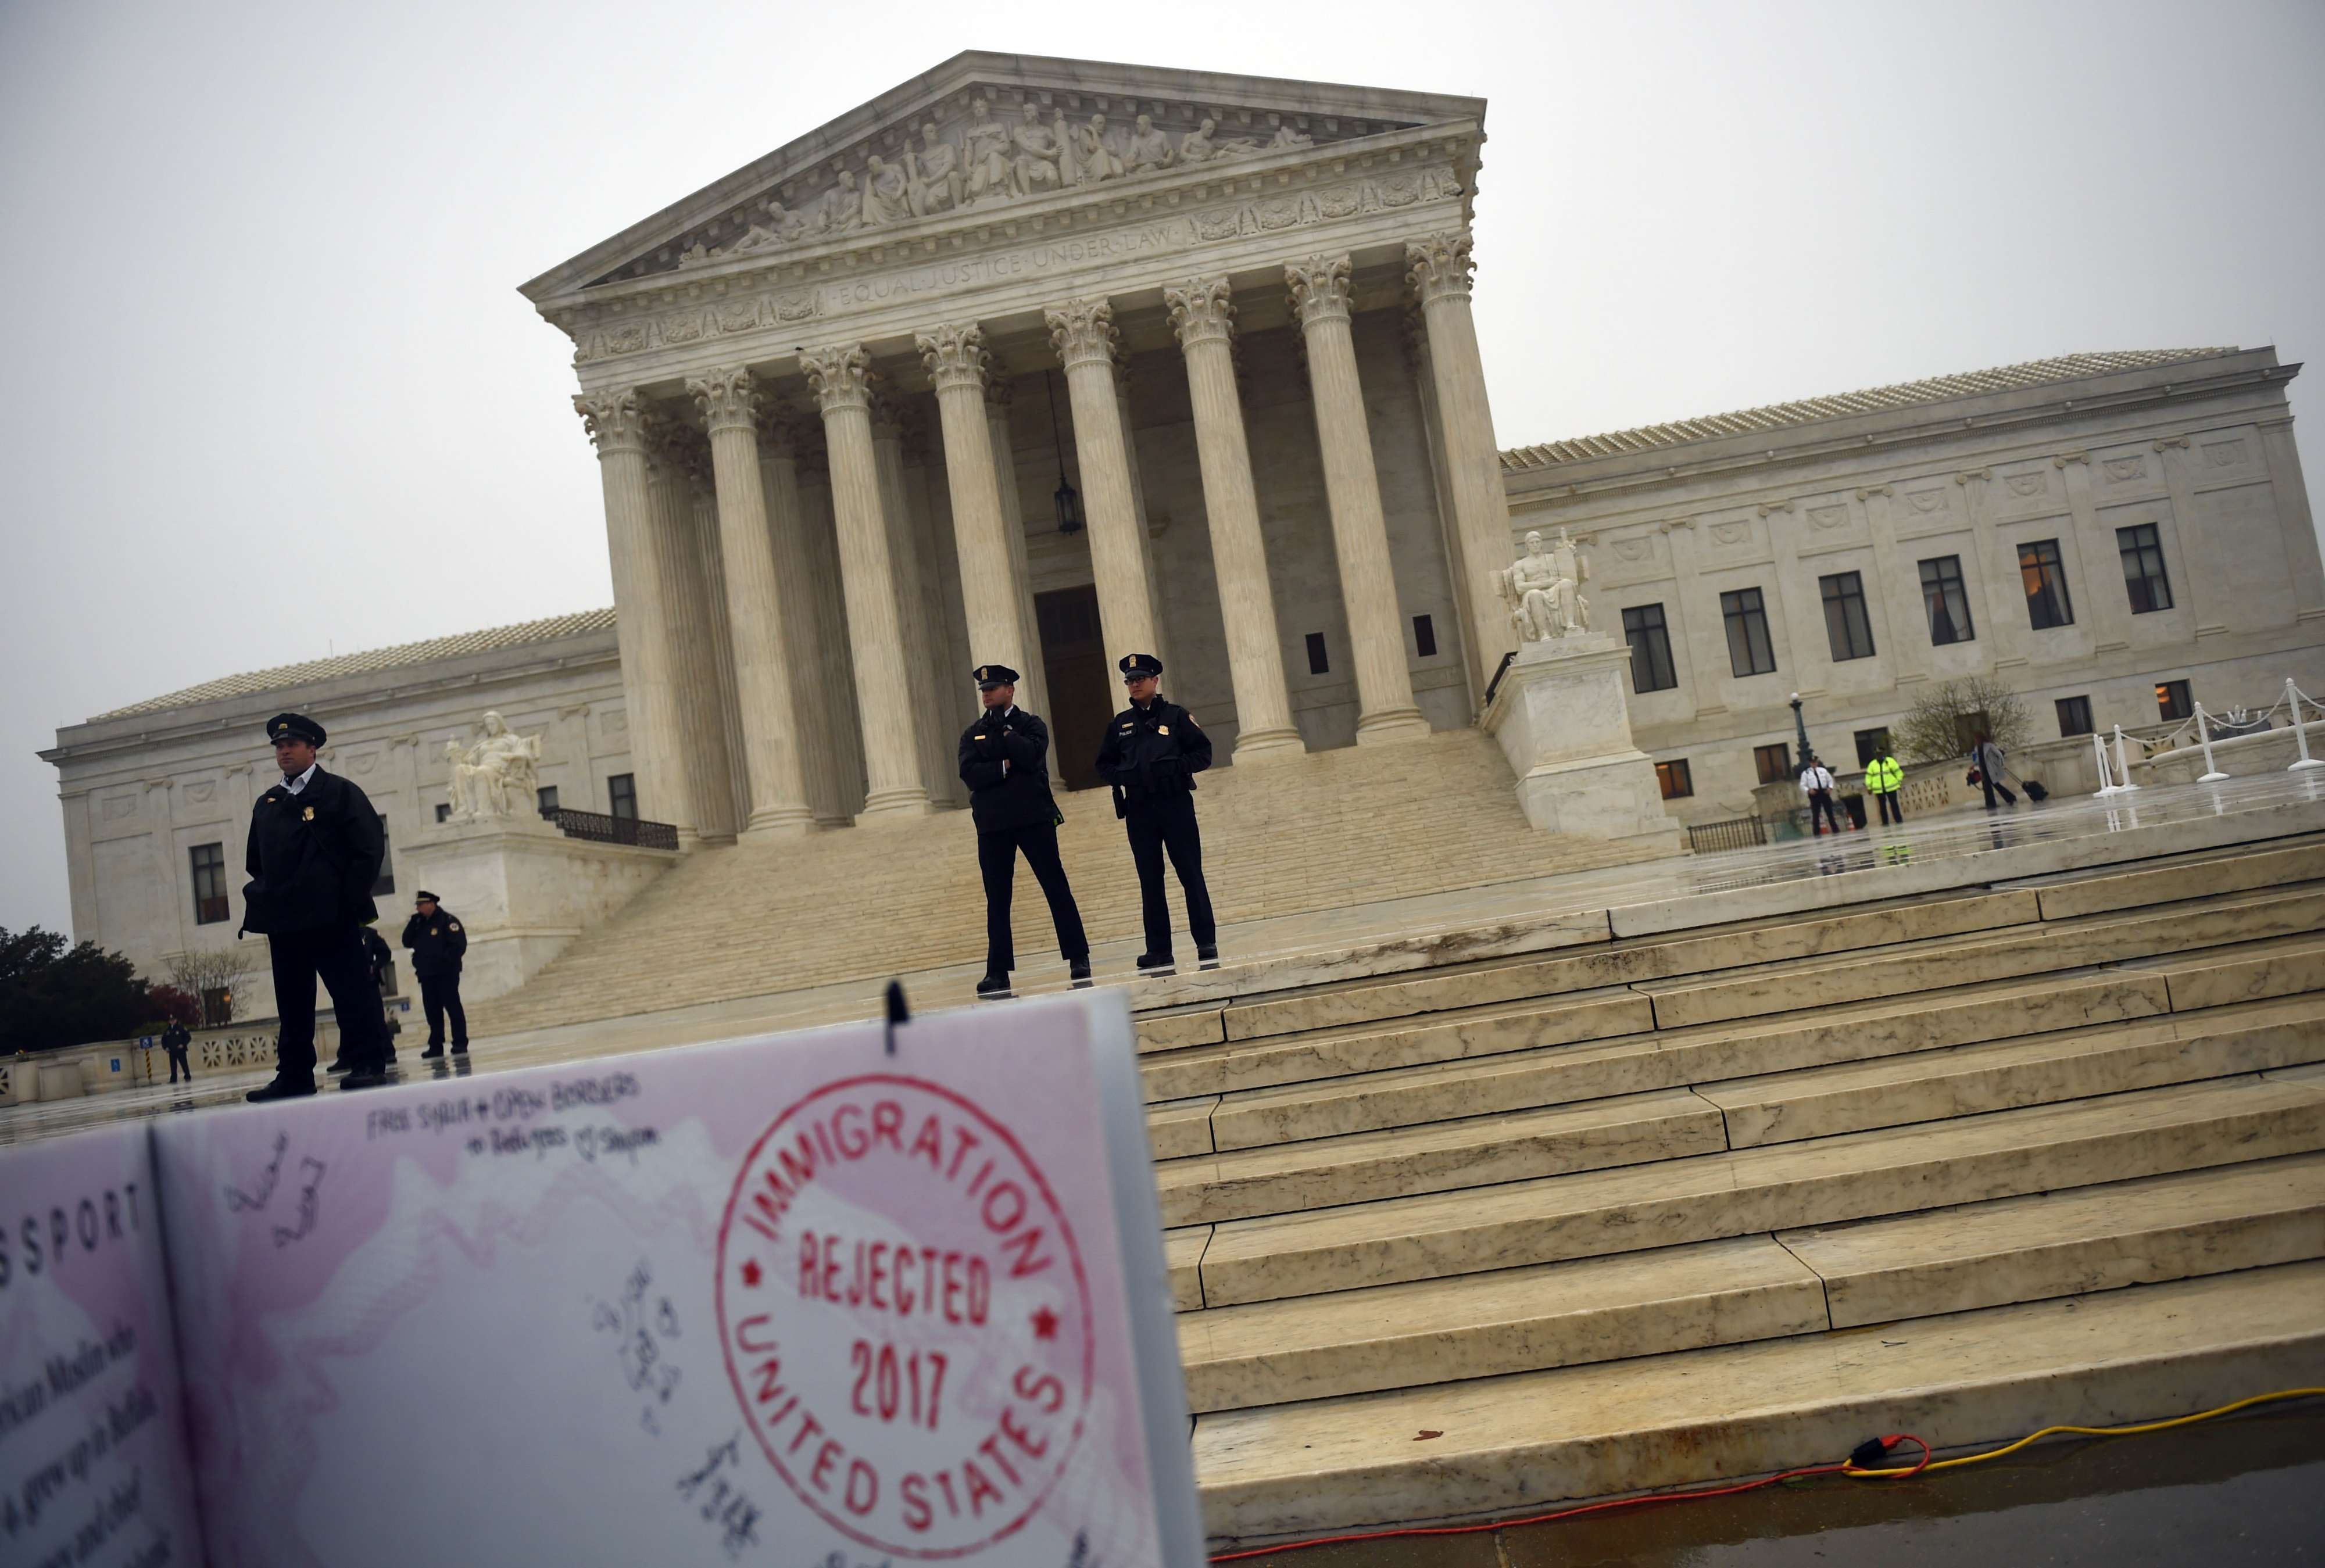 In front of the US Supreme Court on April 25, 2018. (AFP)